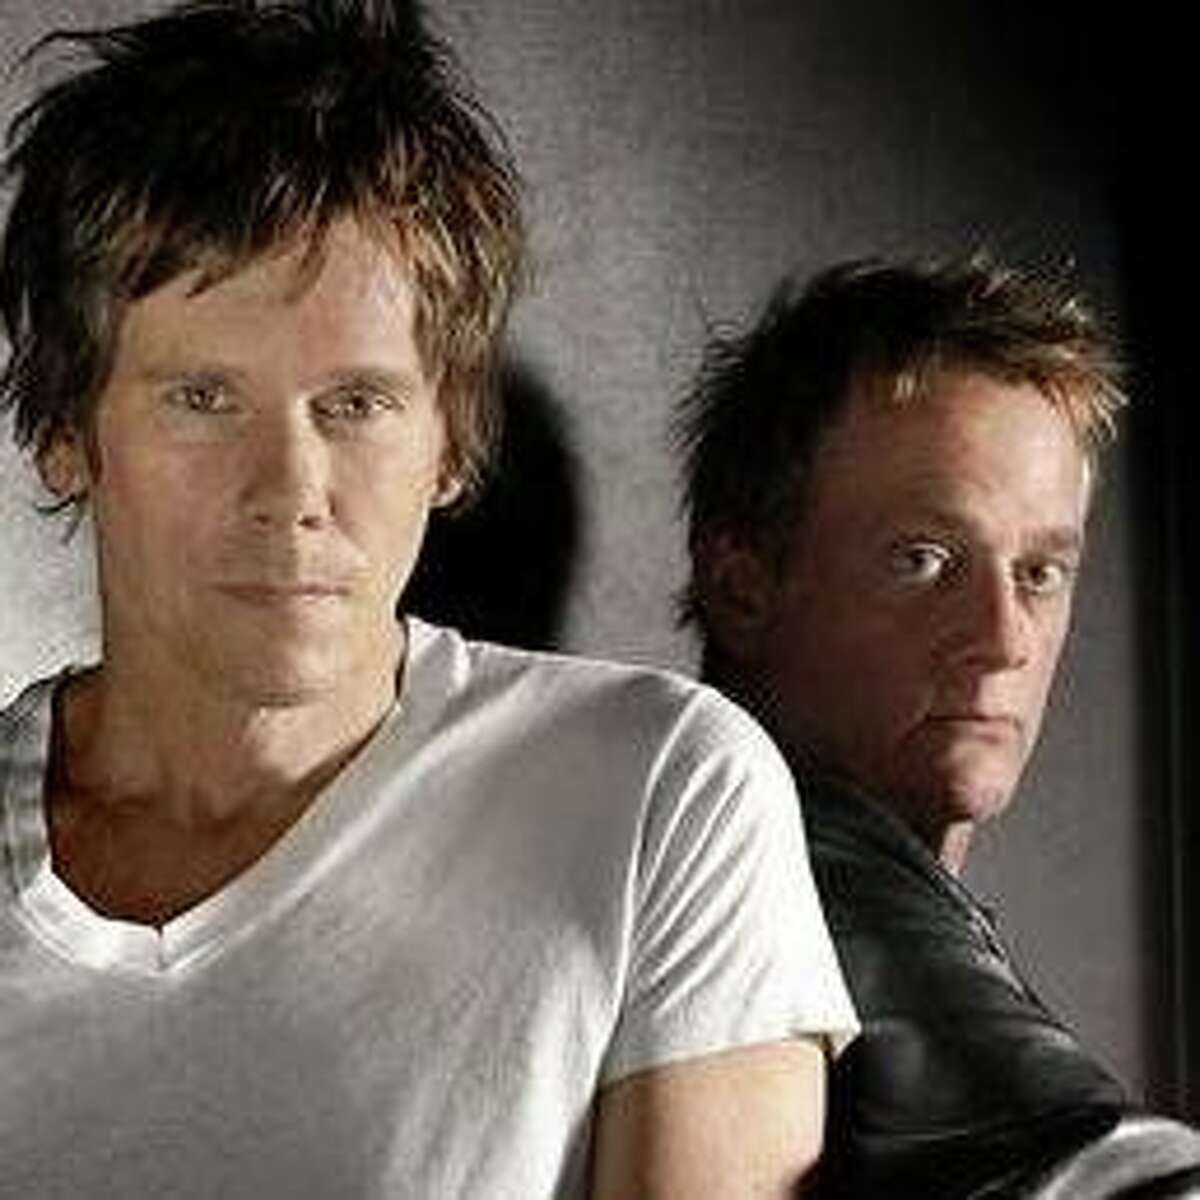 Actor Kevin Bacon and his guitar-playing brother, Michael Bacon, share a love of '60s rock, Americana and folk. The duo has been performing for years, though they've been singing together since they were kids. Expect a mix of originals and select covers, from the fun-loving to the highly moving. 7 p.m. Thursday at Gruene Hall, 1281 Gruene Rd, New Braunfels. $45. 830-629-5077. gruenehall.com -- Hector Saldana.